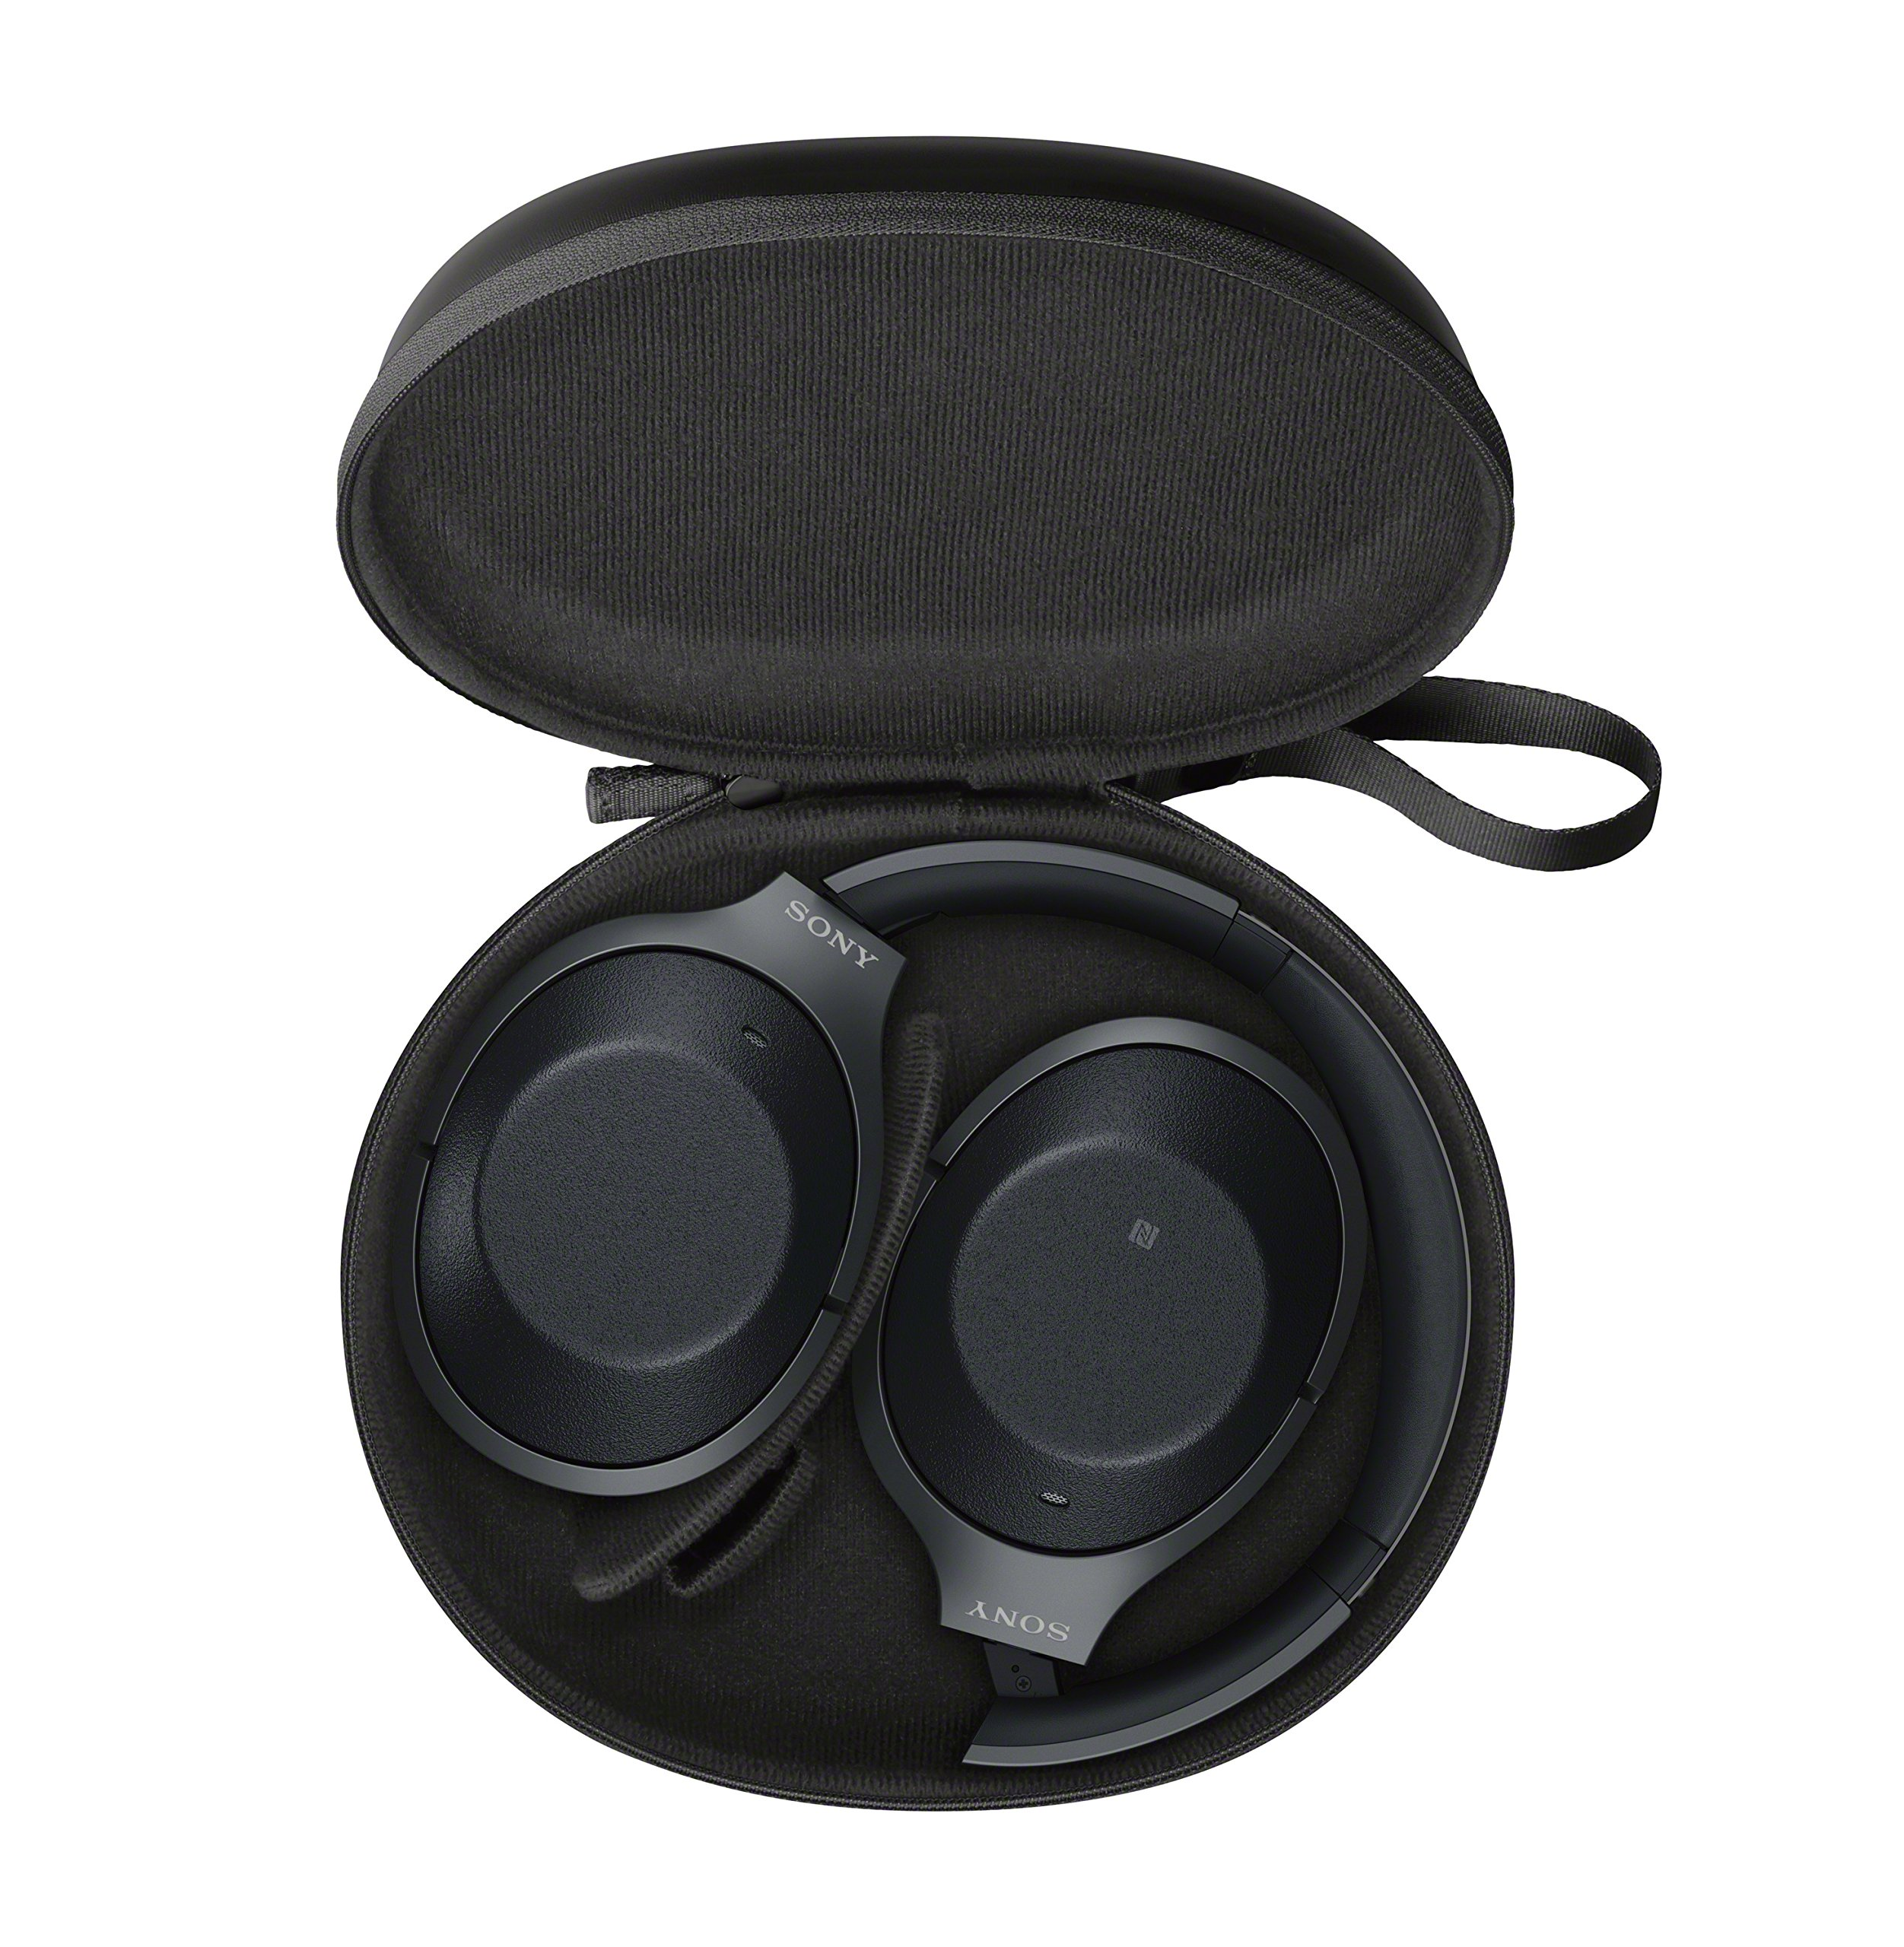 Sony Noise Cancelling Headphones WH1000XM2: Over Ear Wireless Bluetooth Headphones with Case - Black by Sony (Image #6)